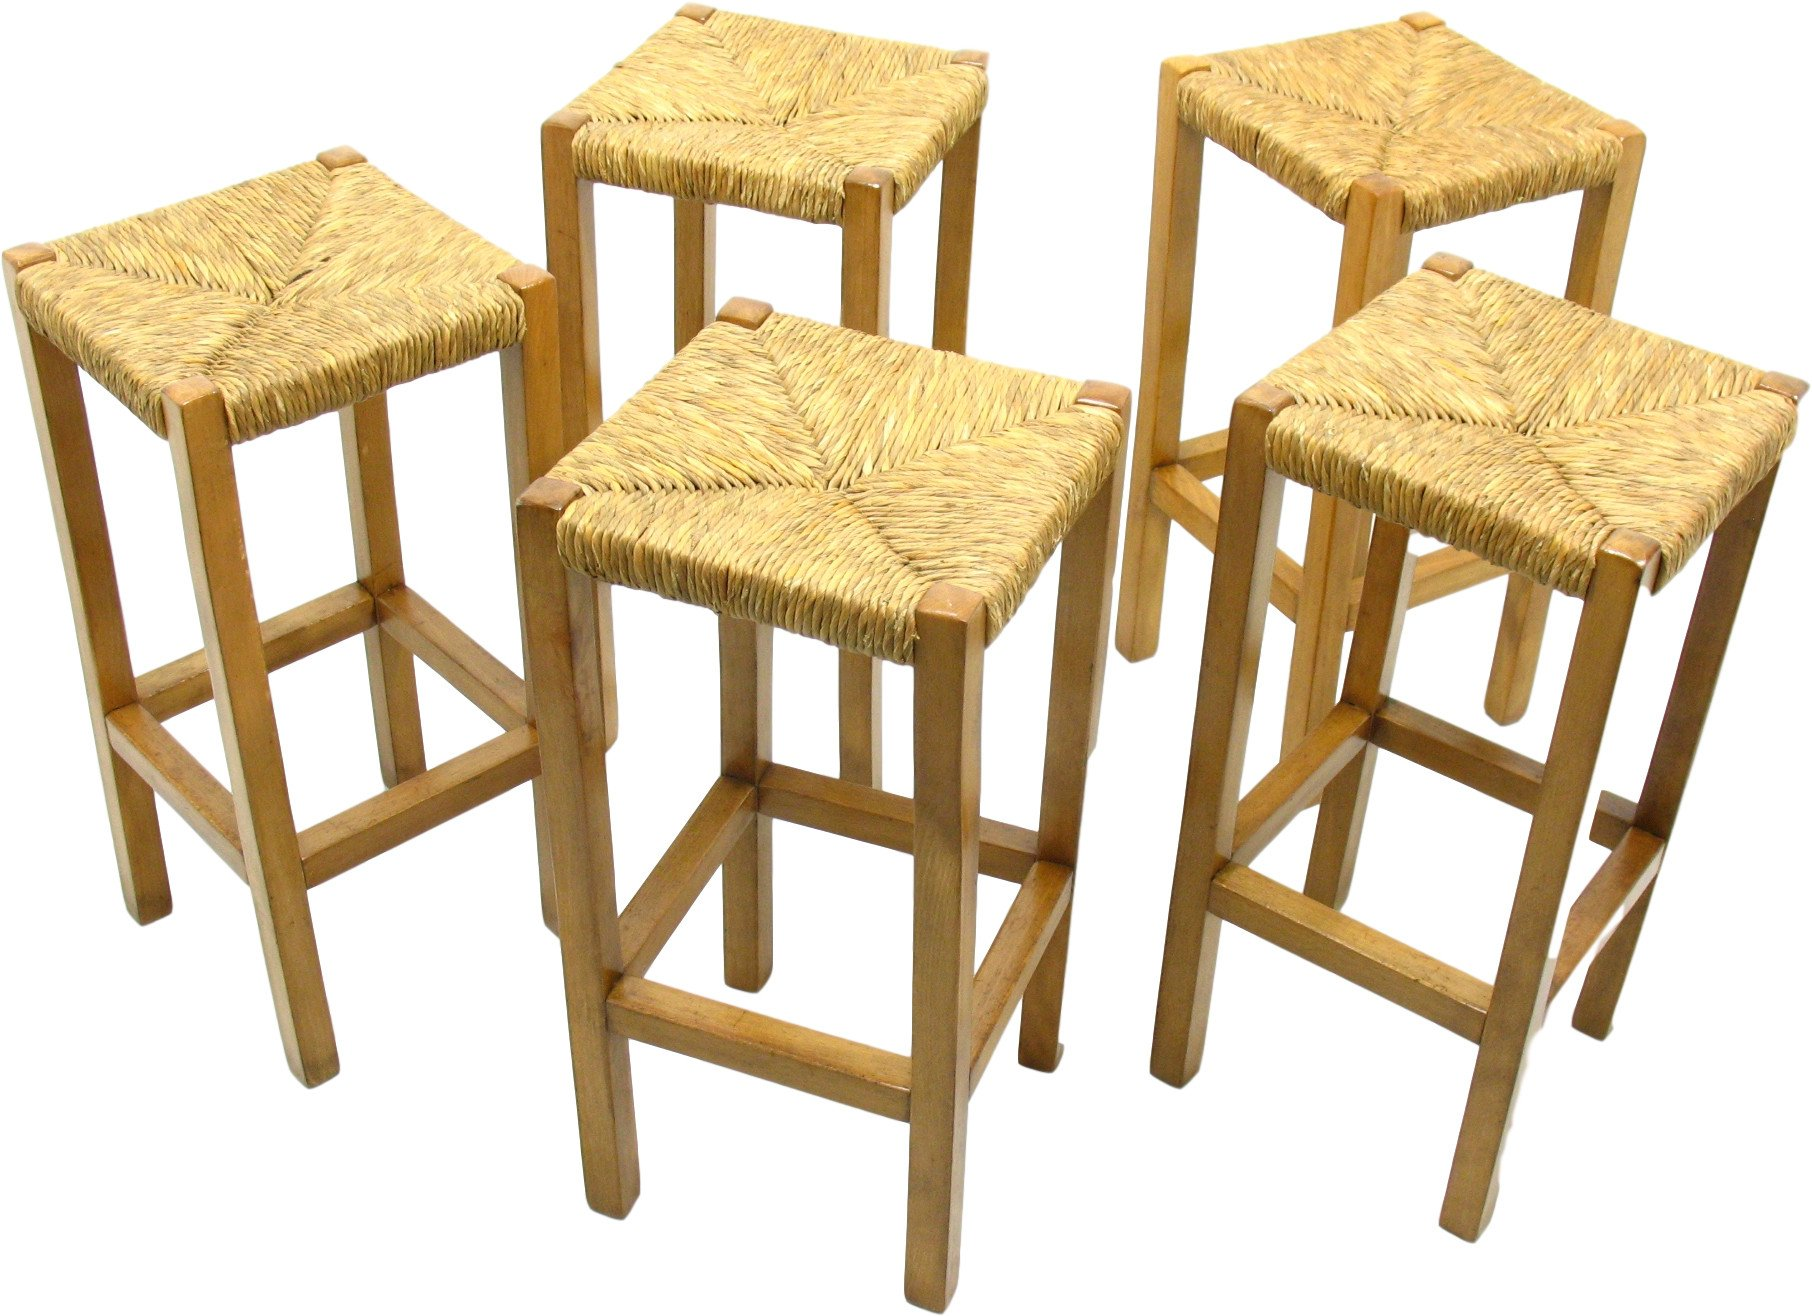 Set of Five Bar Stools, 1980s